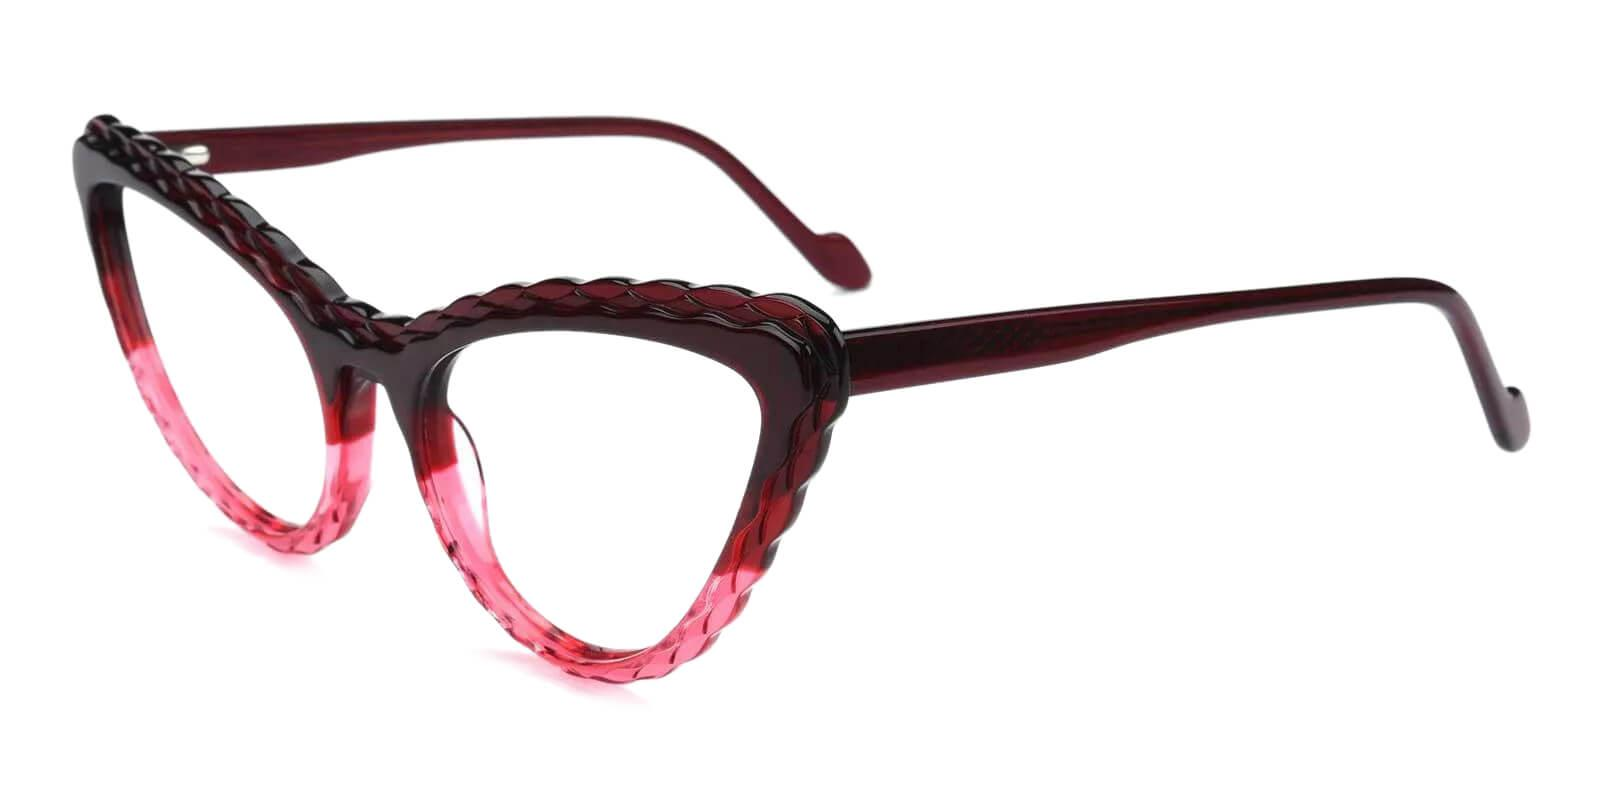 Harmt Purple Acetate Eyeglasses , Fashion , SpringHinges , UniversalBridgeFit Frames from ABBE Glasses